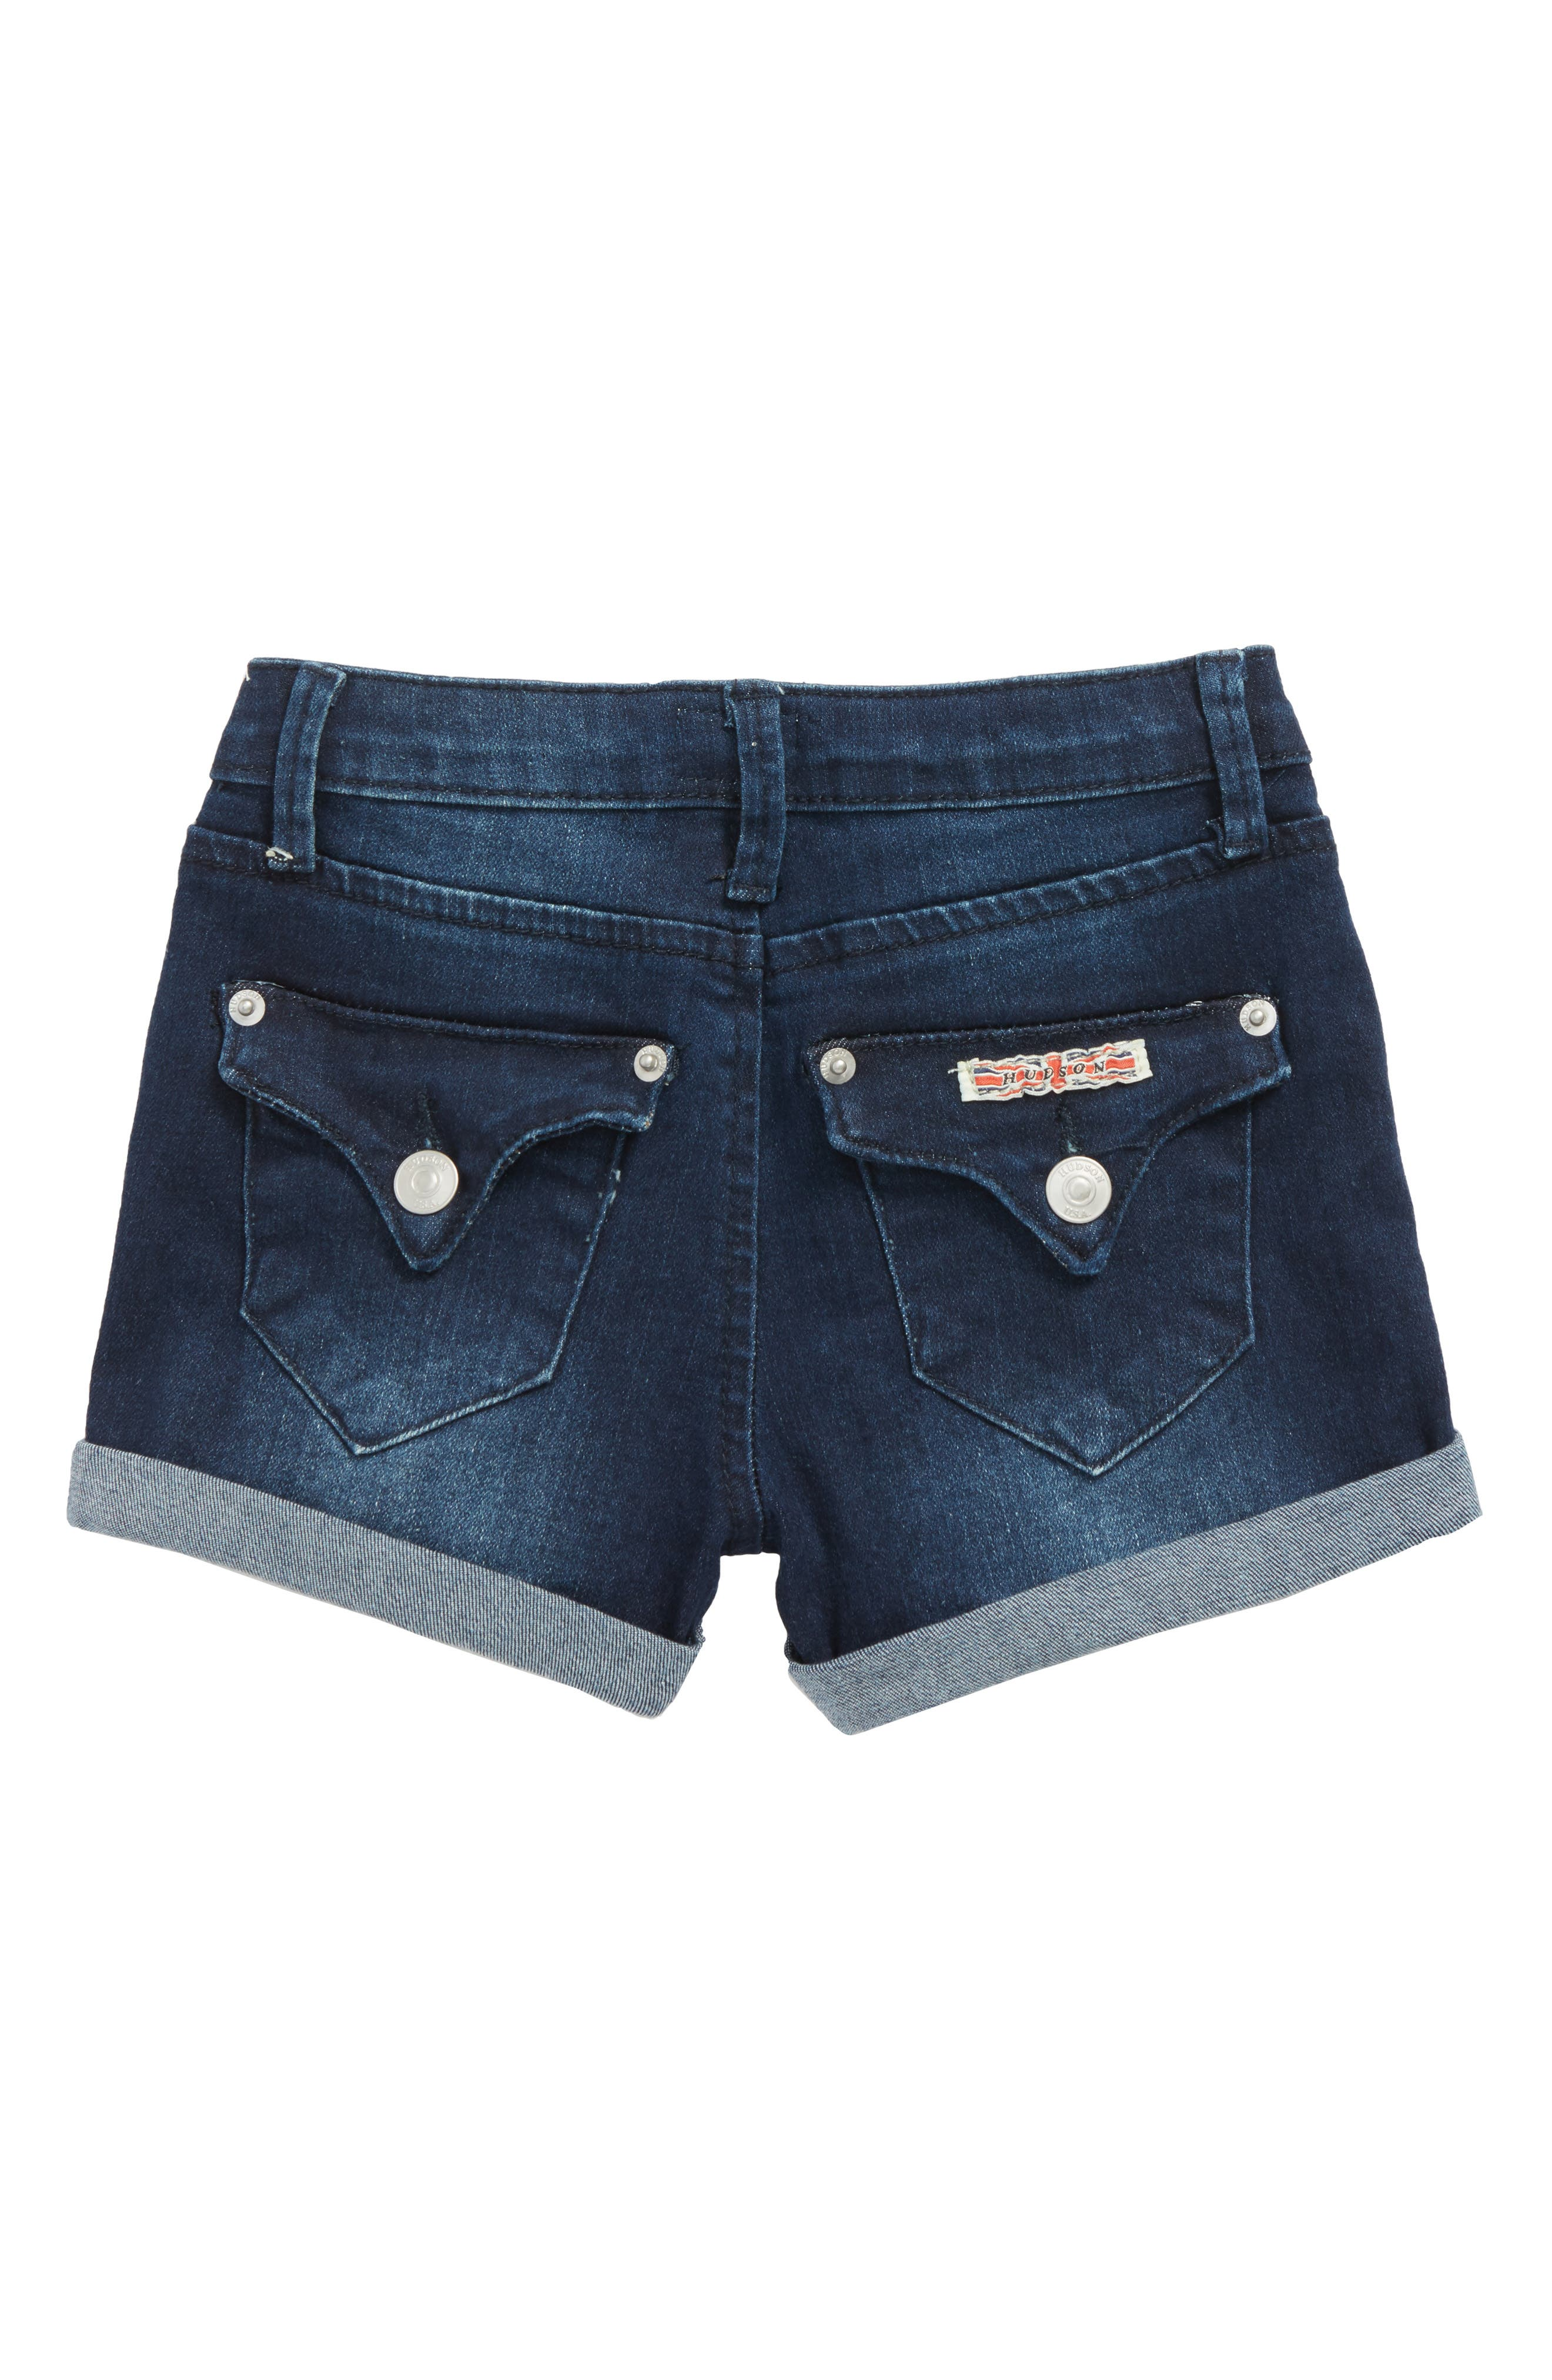 Roll Cuff Denim Shorts,                             Alternate thumbnail 2, color,                             427